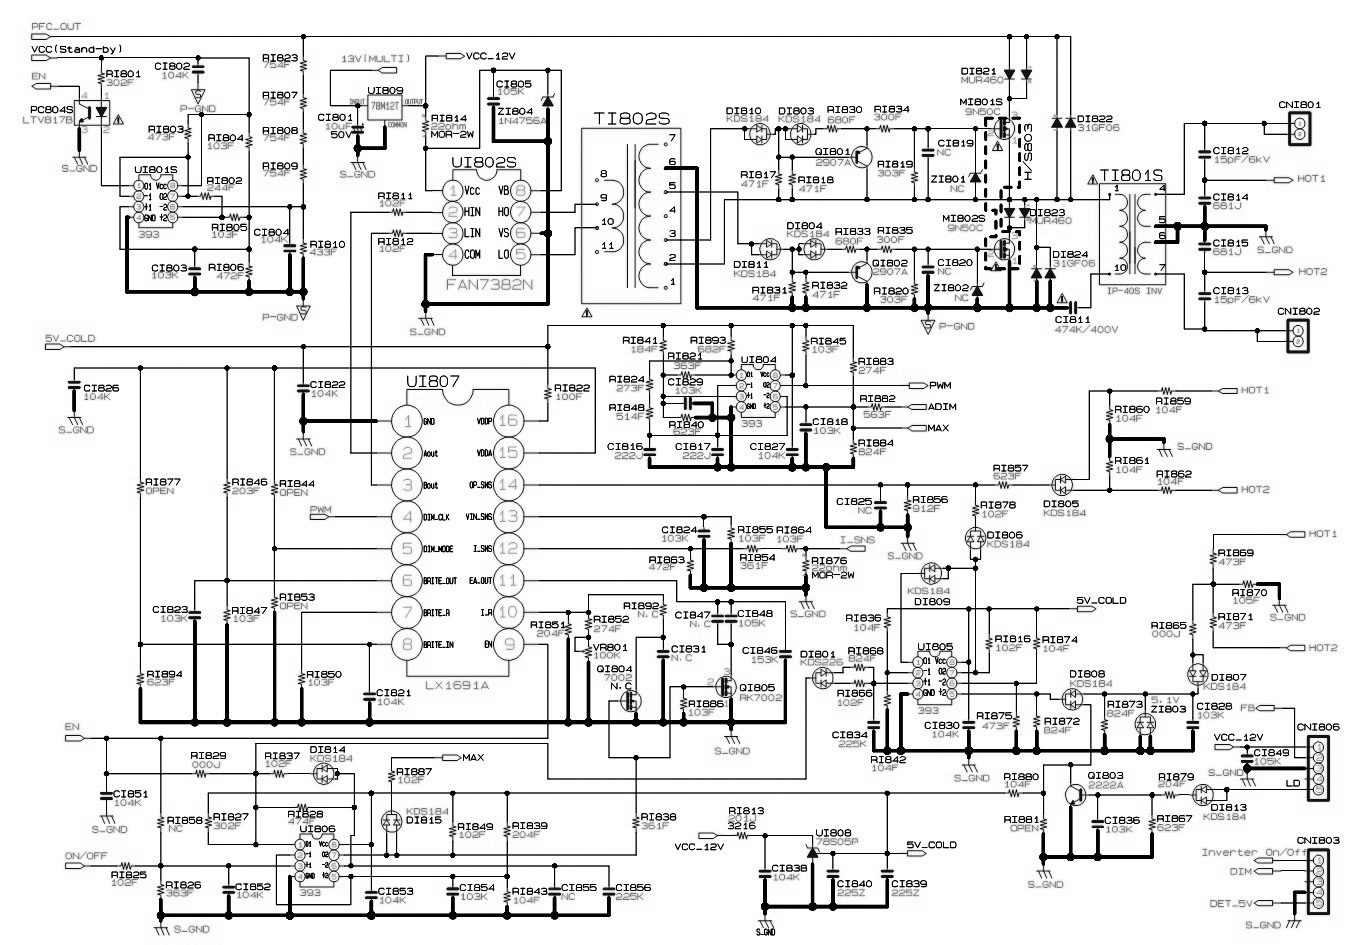 samsung led tv schematic diagram database wiring diagram [ 1370 x 945 Pixel ]